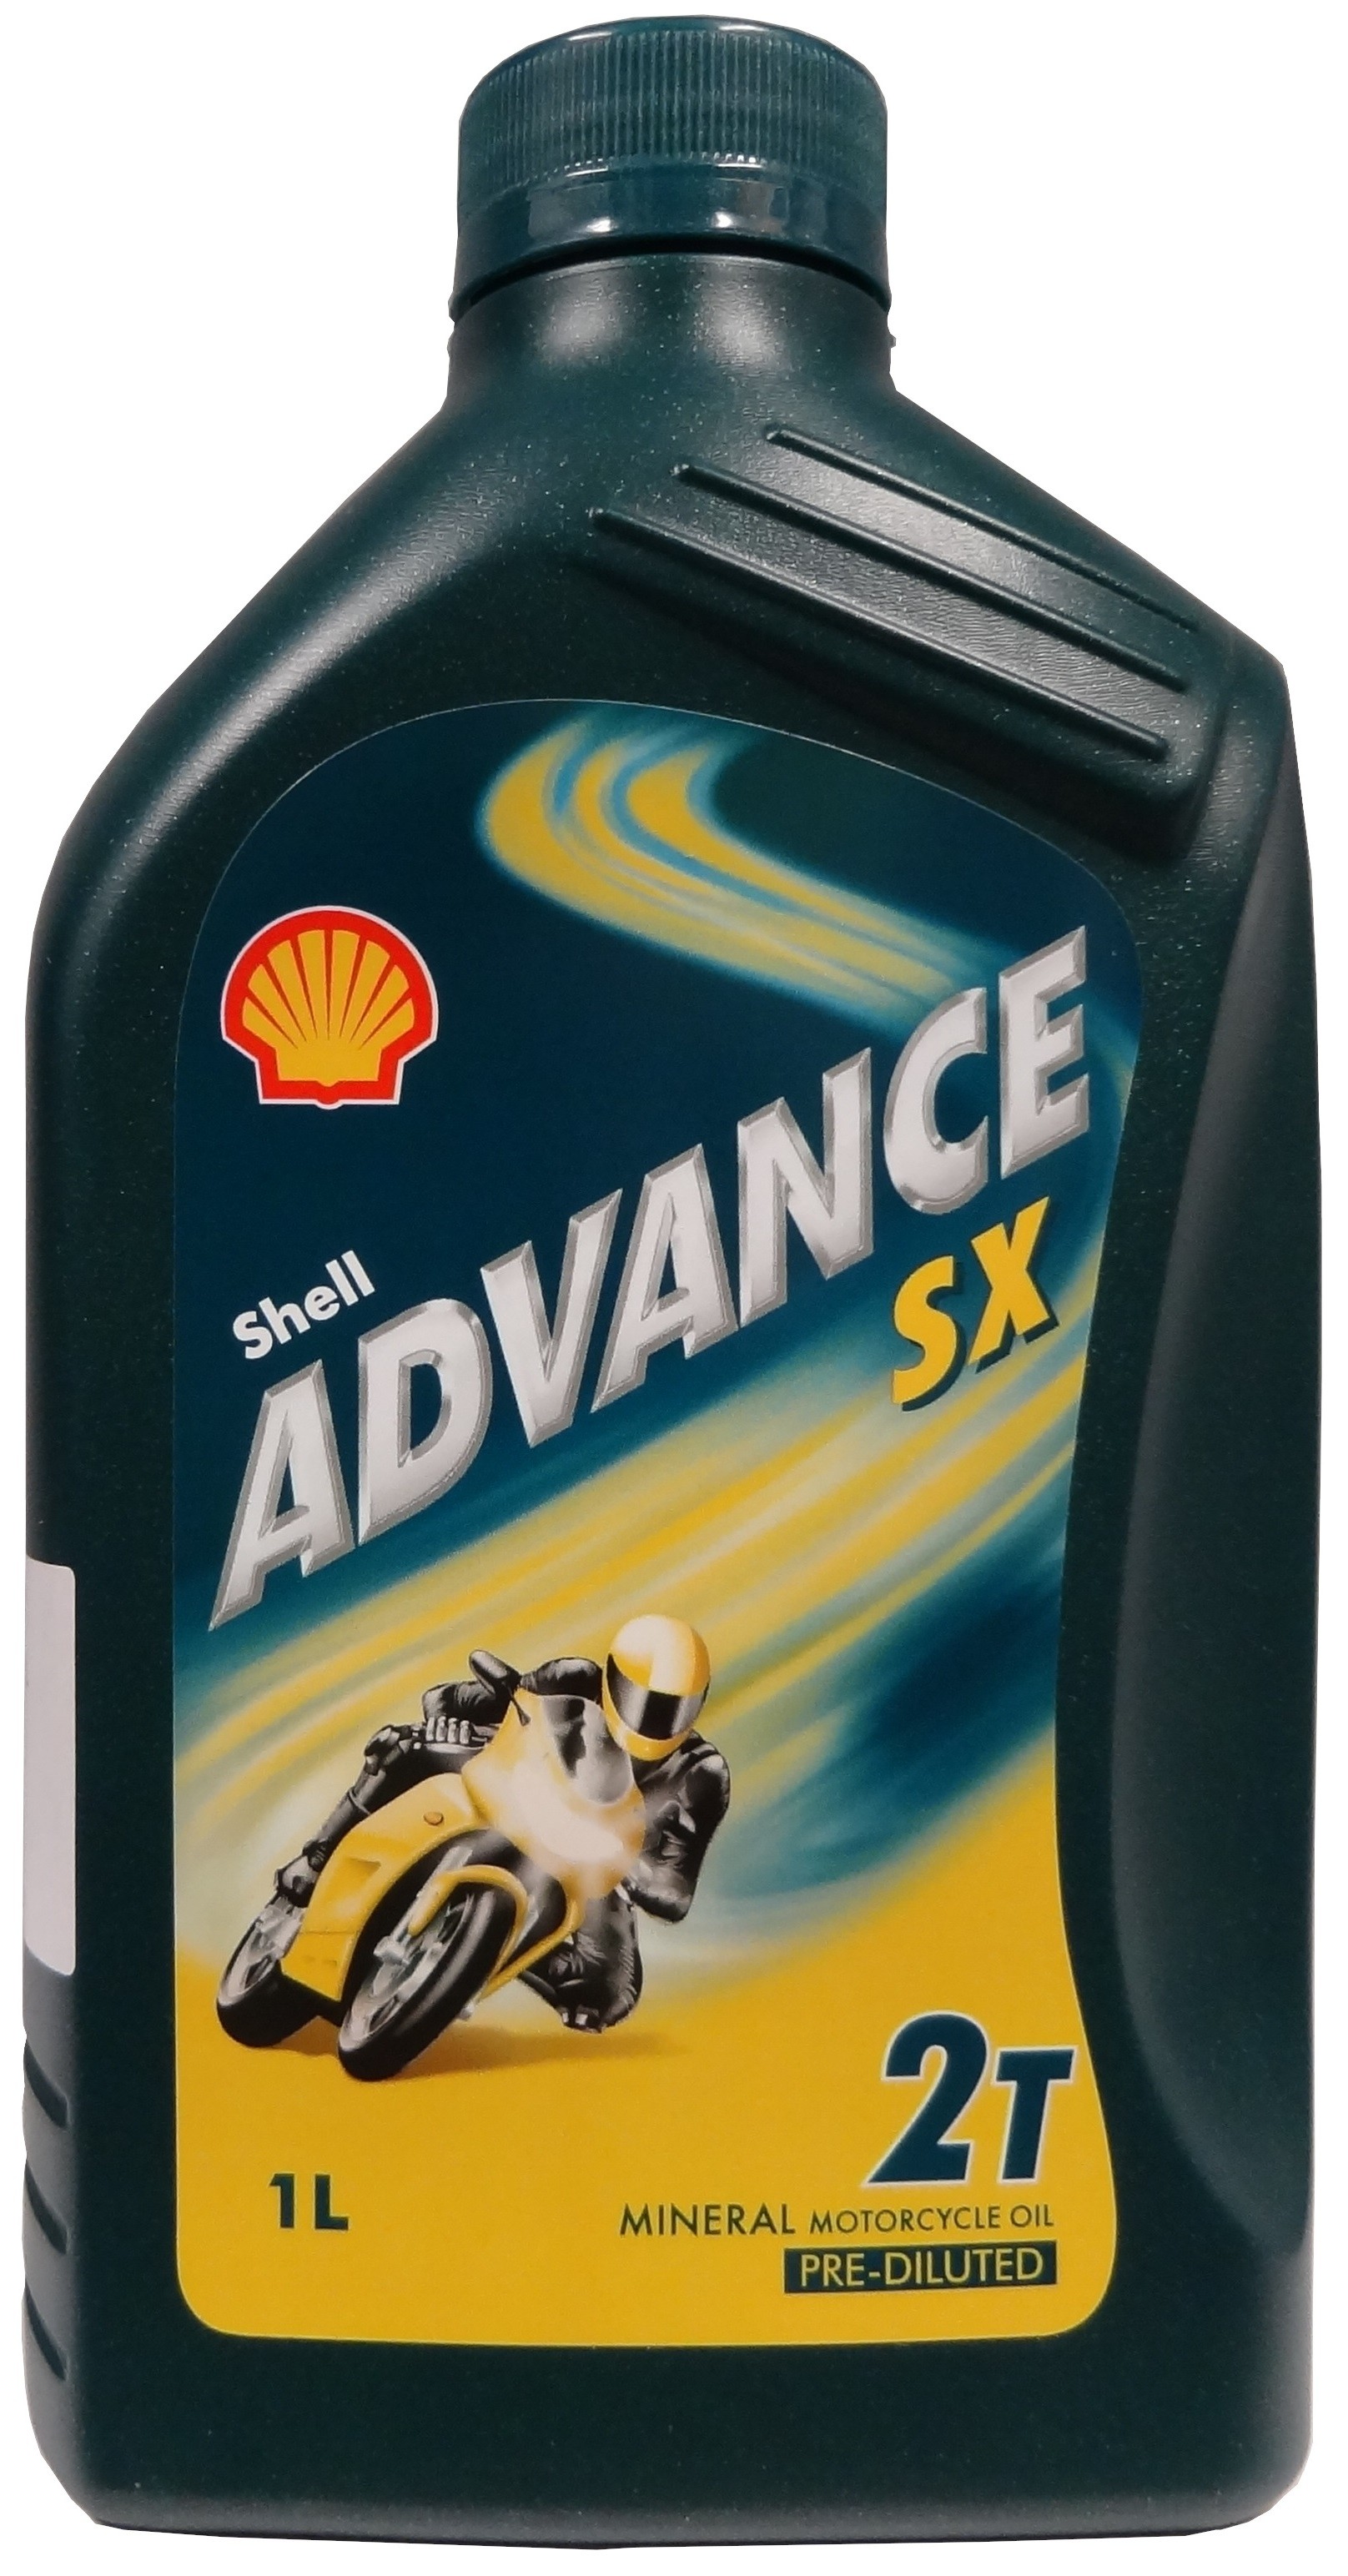 Shell Advance SX 2T 1L